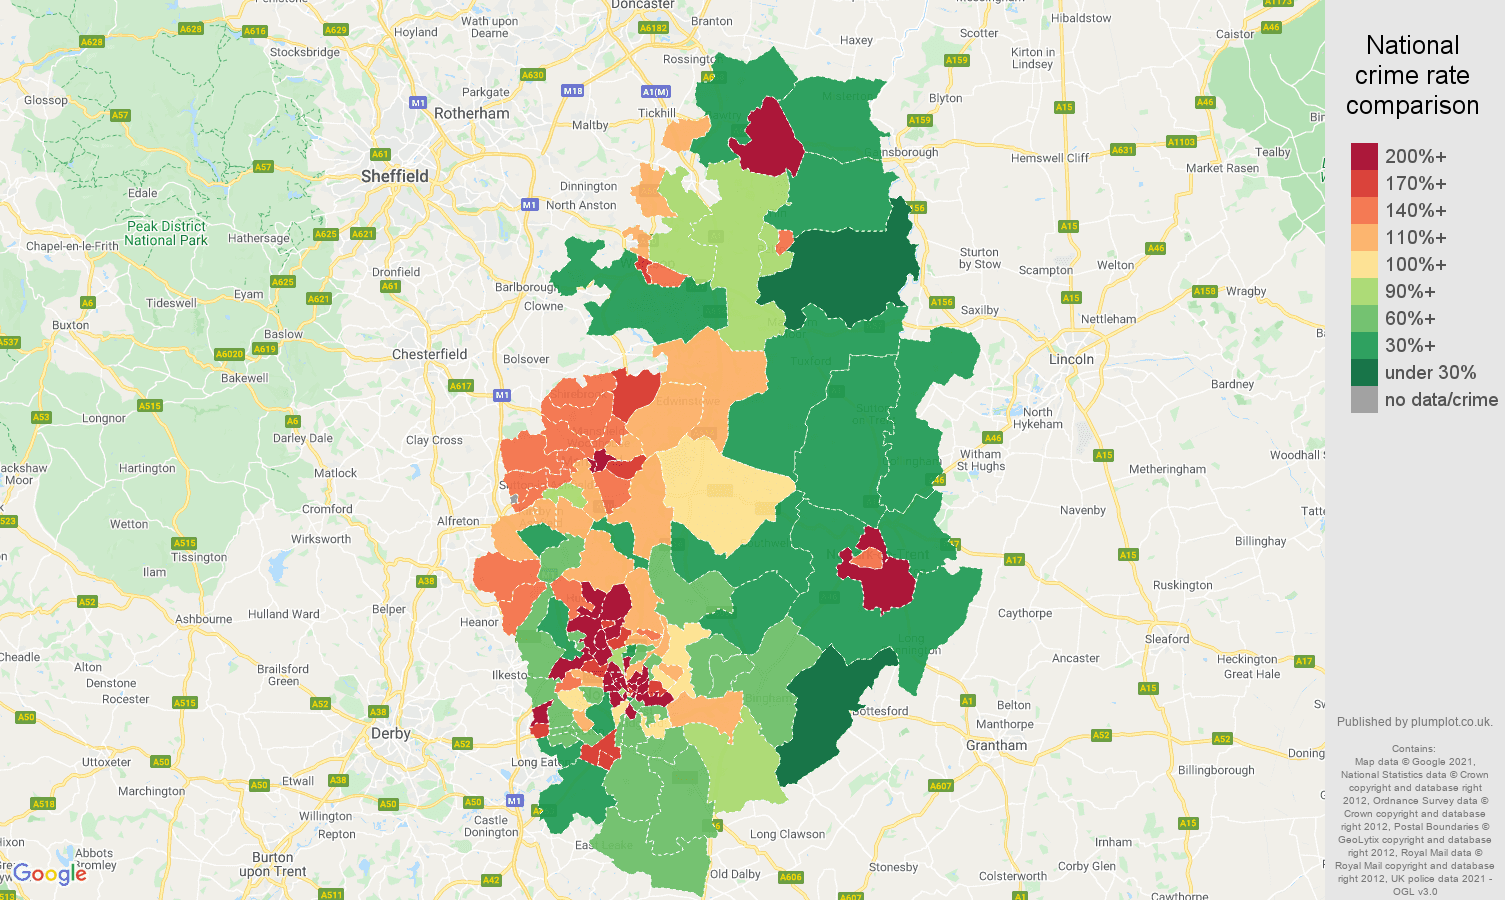 Nottinghamshire antisocial behaviour crime rate comparison map